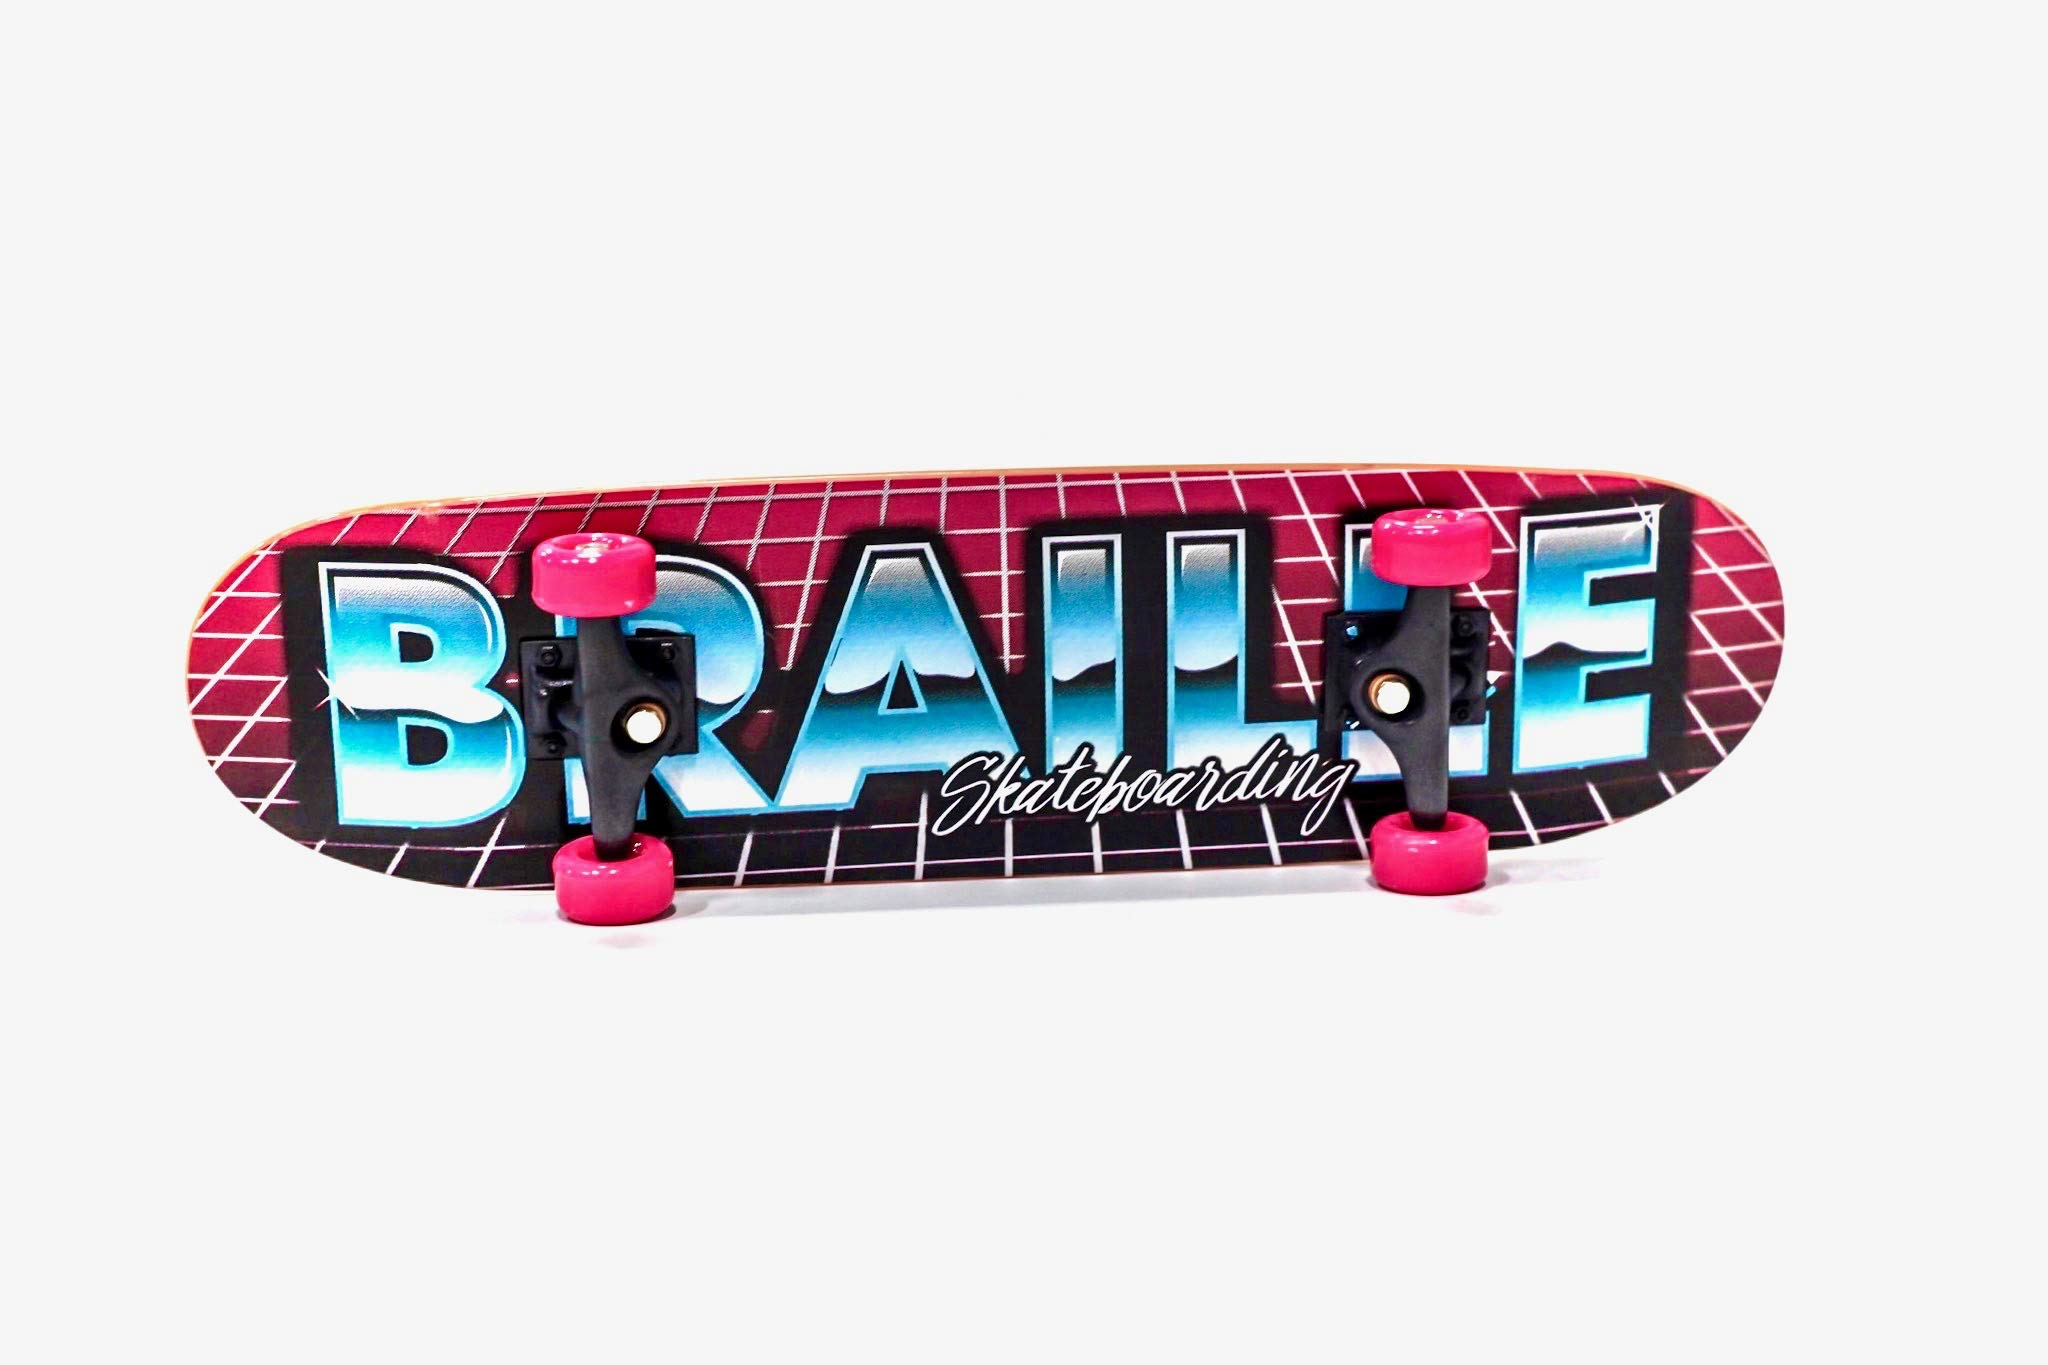 Braille Skateboarding Aaron Kyro 80's 11inch Professional Hand Board. Toy Skateboard Comes with Wheels, Trucks, Hardware and Tools. Real Griptape. by Braille Skateboarding (Image #2)